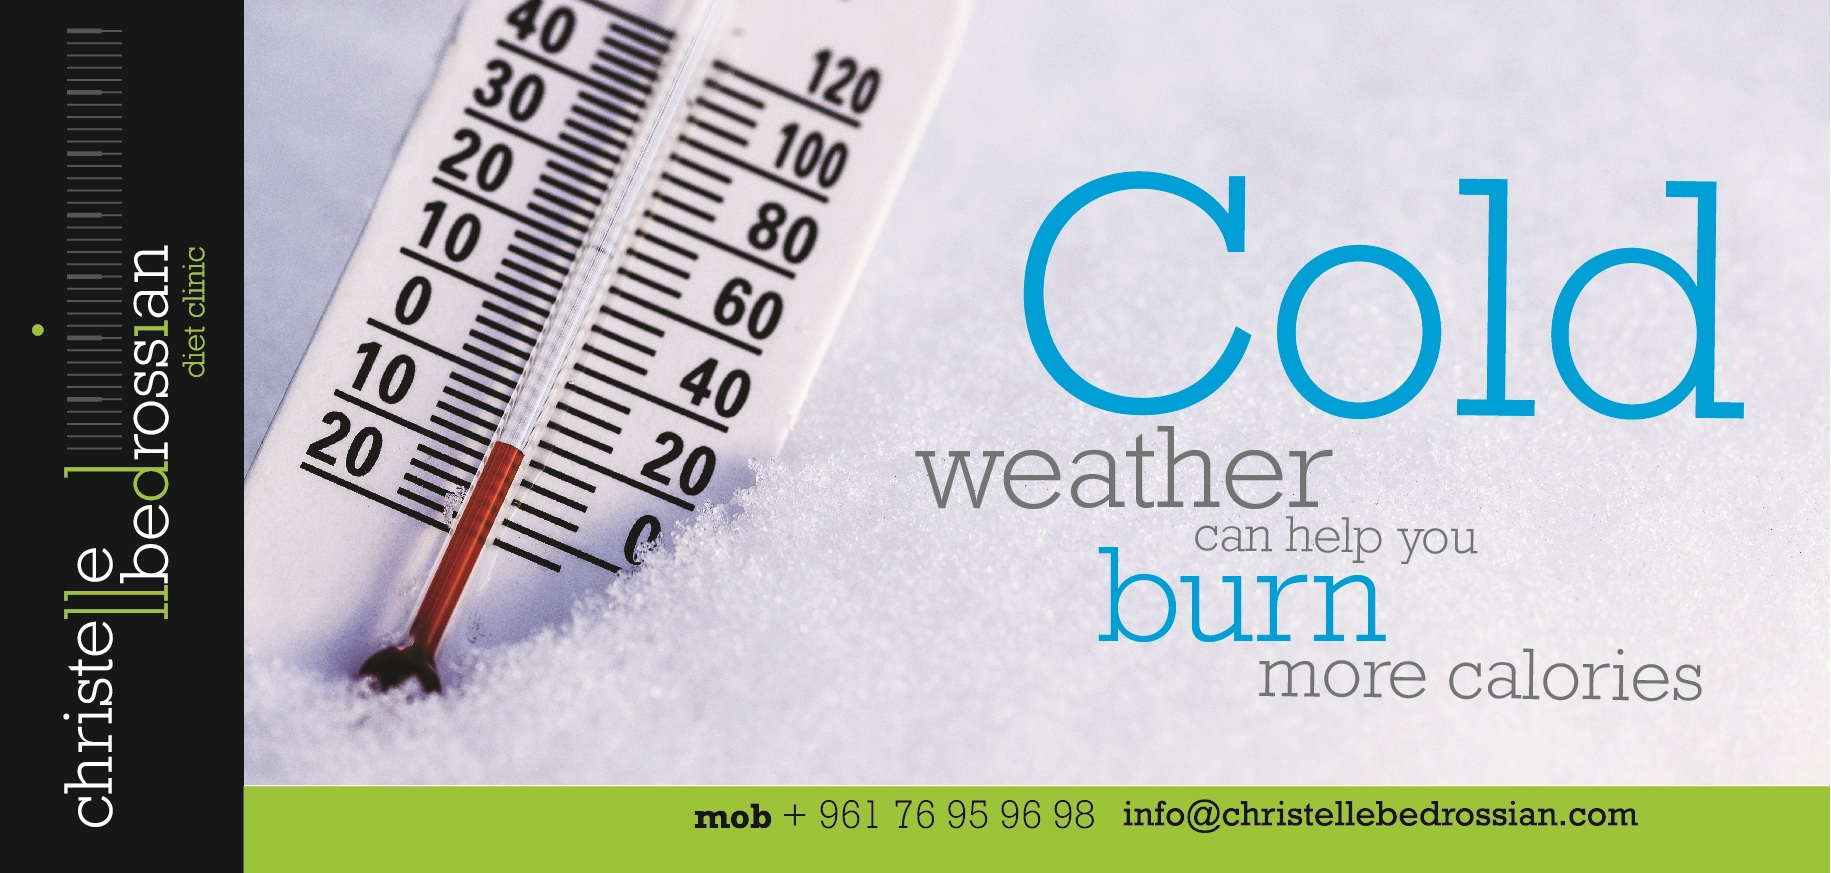 best dietitian lebanon, lebanon, diet, diet clinic, lose weight lebanon, health, radio, cold weather